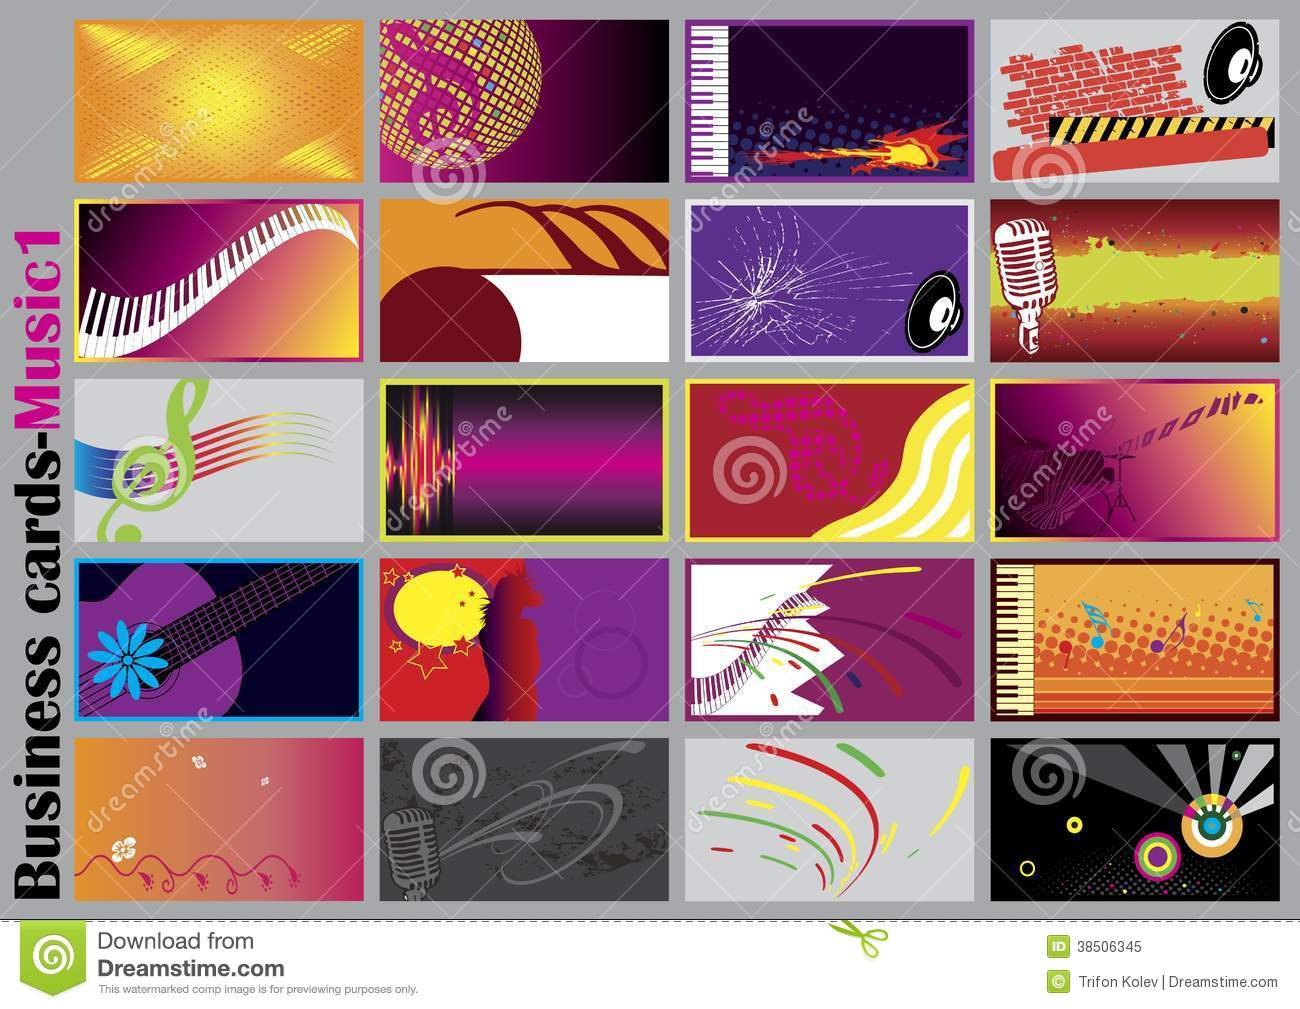 Music business cards stock vector. Illustration of banner - 38506345